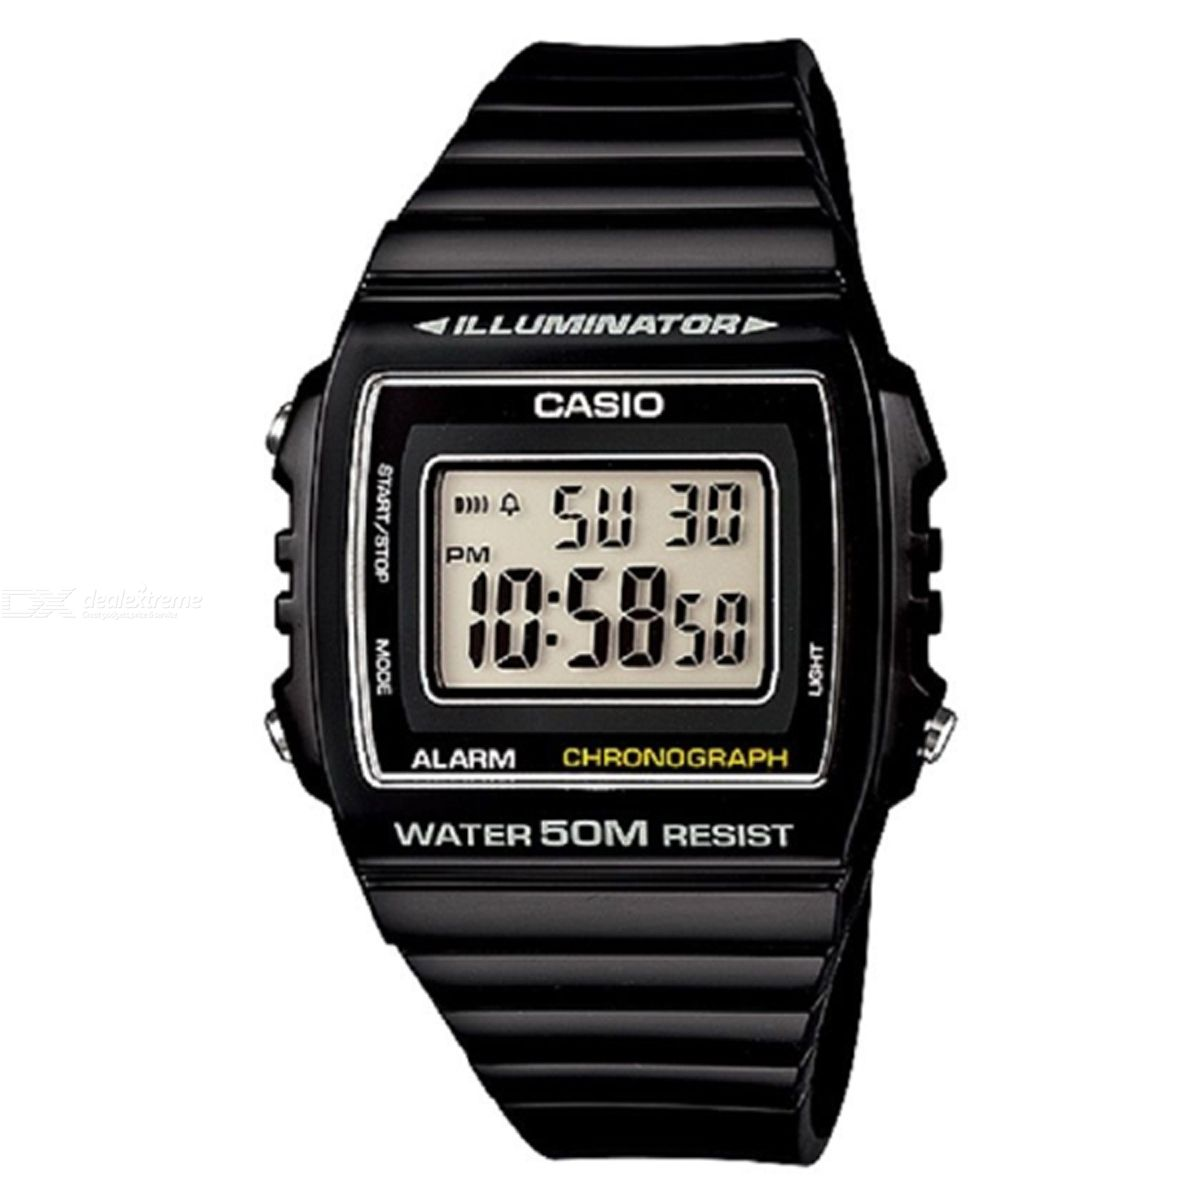 CASIO W-215H-1AVDF Men's Wristwatch - Black (Without Box)